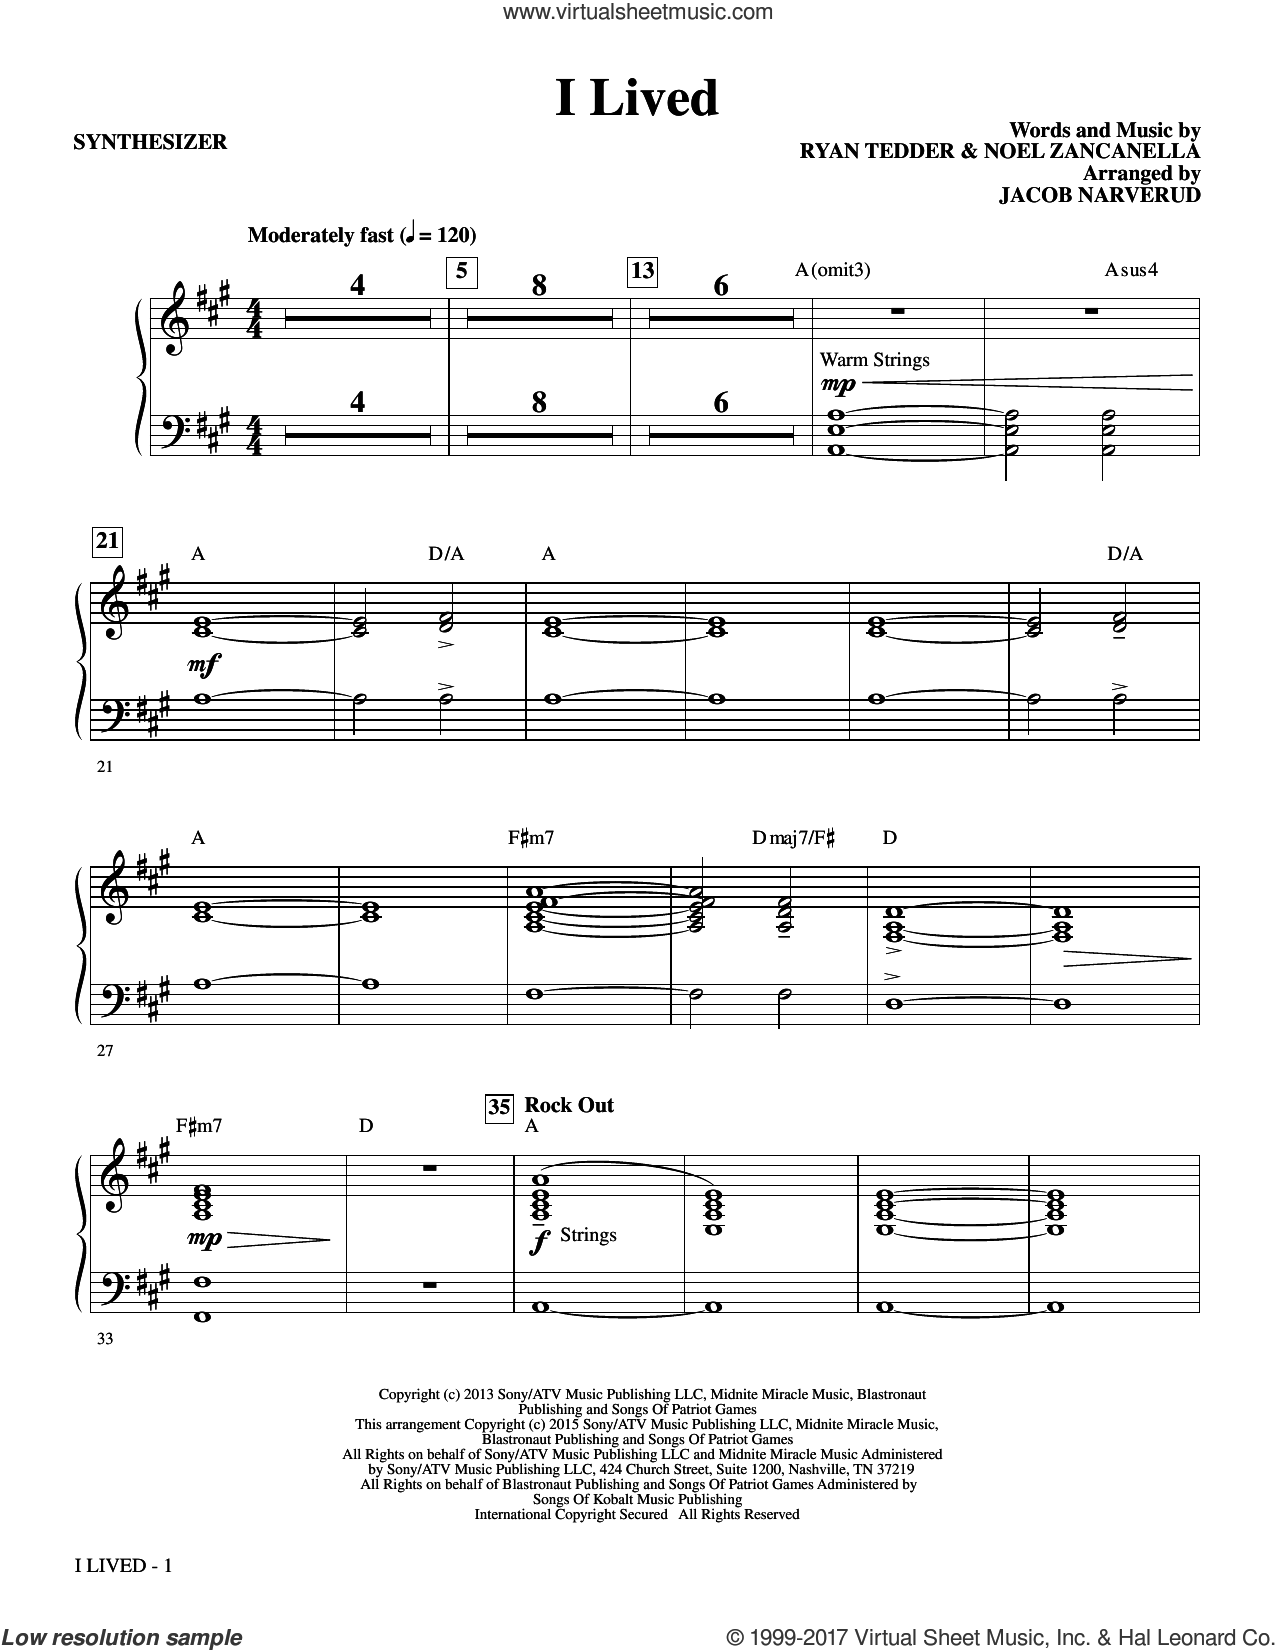 I Lived (complete set of parts) sheet music for orchestra/band by OneRepublic, Jacob Narverud, Noel Zancanella and Ryan Tedder, intermediate